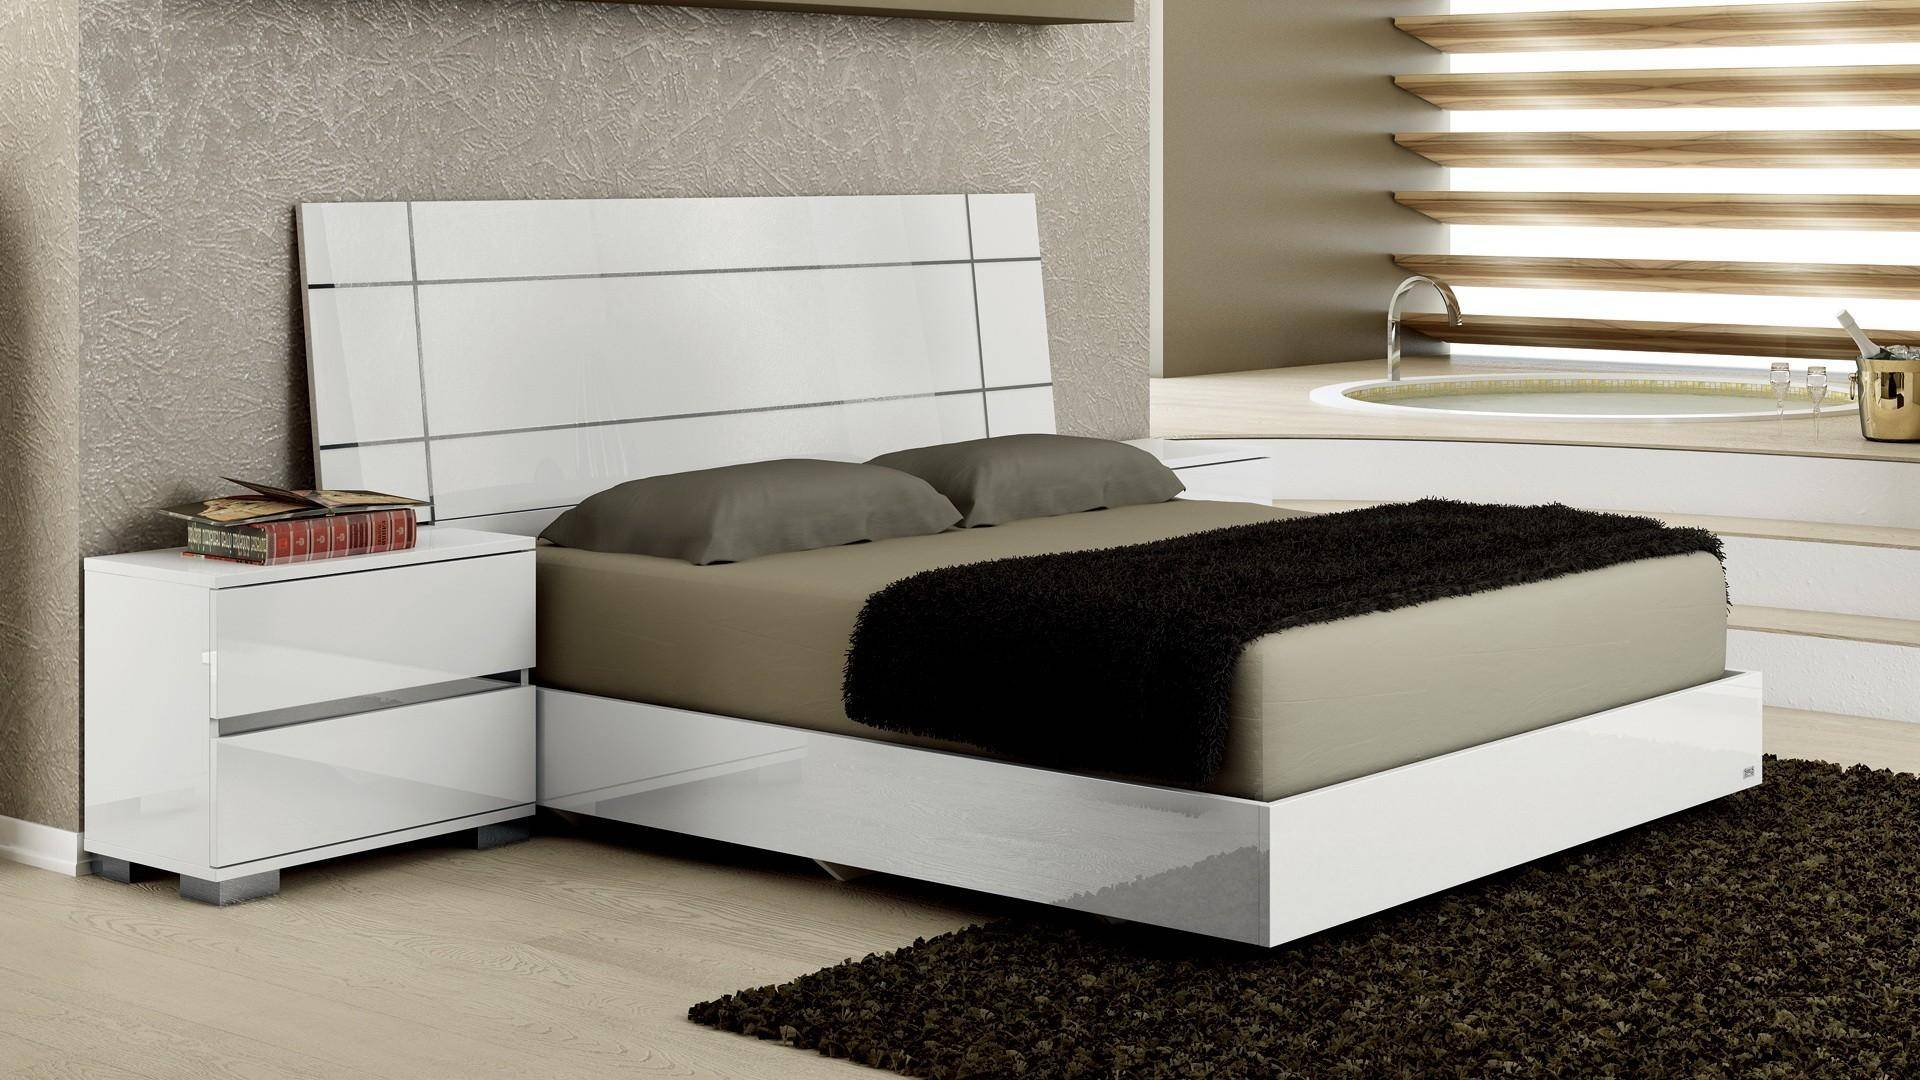 Tremendous At Home Usa Dream White High Gloss Lacquer Queen Bedroom Set Bralicious Painted Fabric Chair Ideas Braliciousco